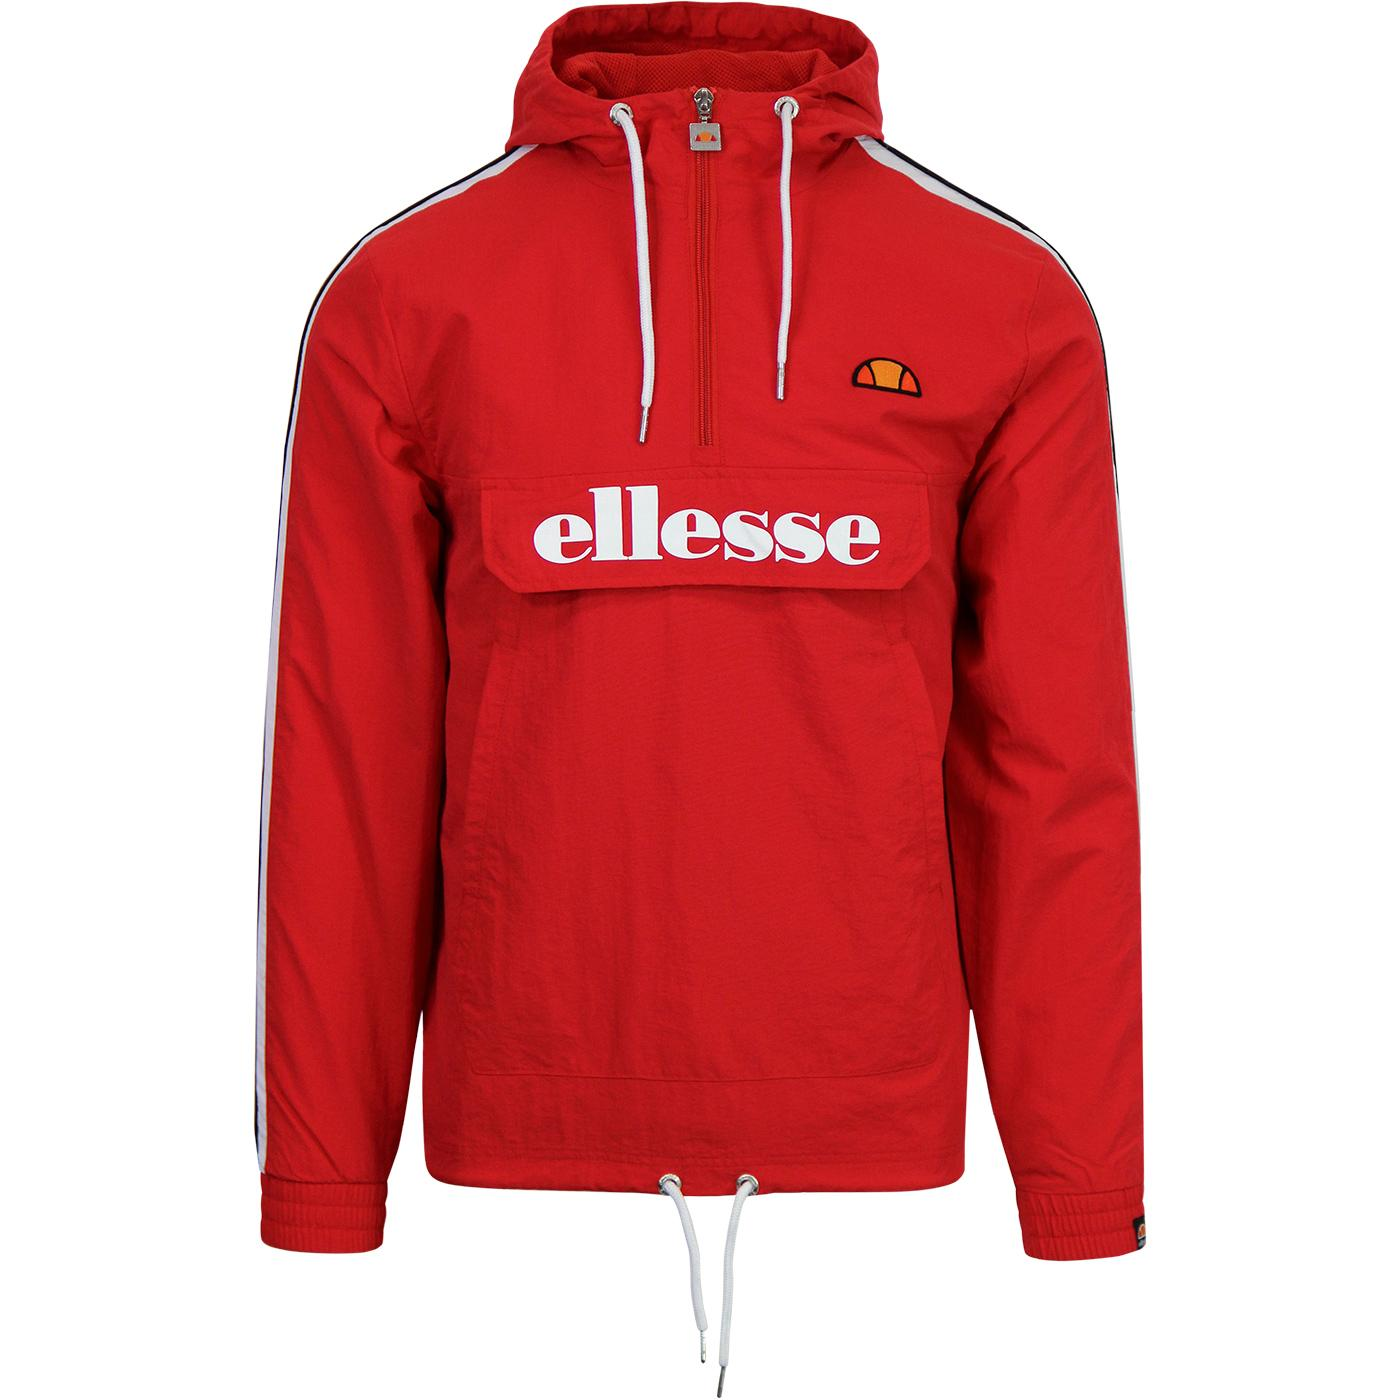 Fighter ELLESSE Half Zip Retro Casuals Tracktop R